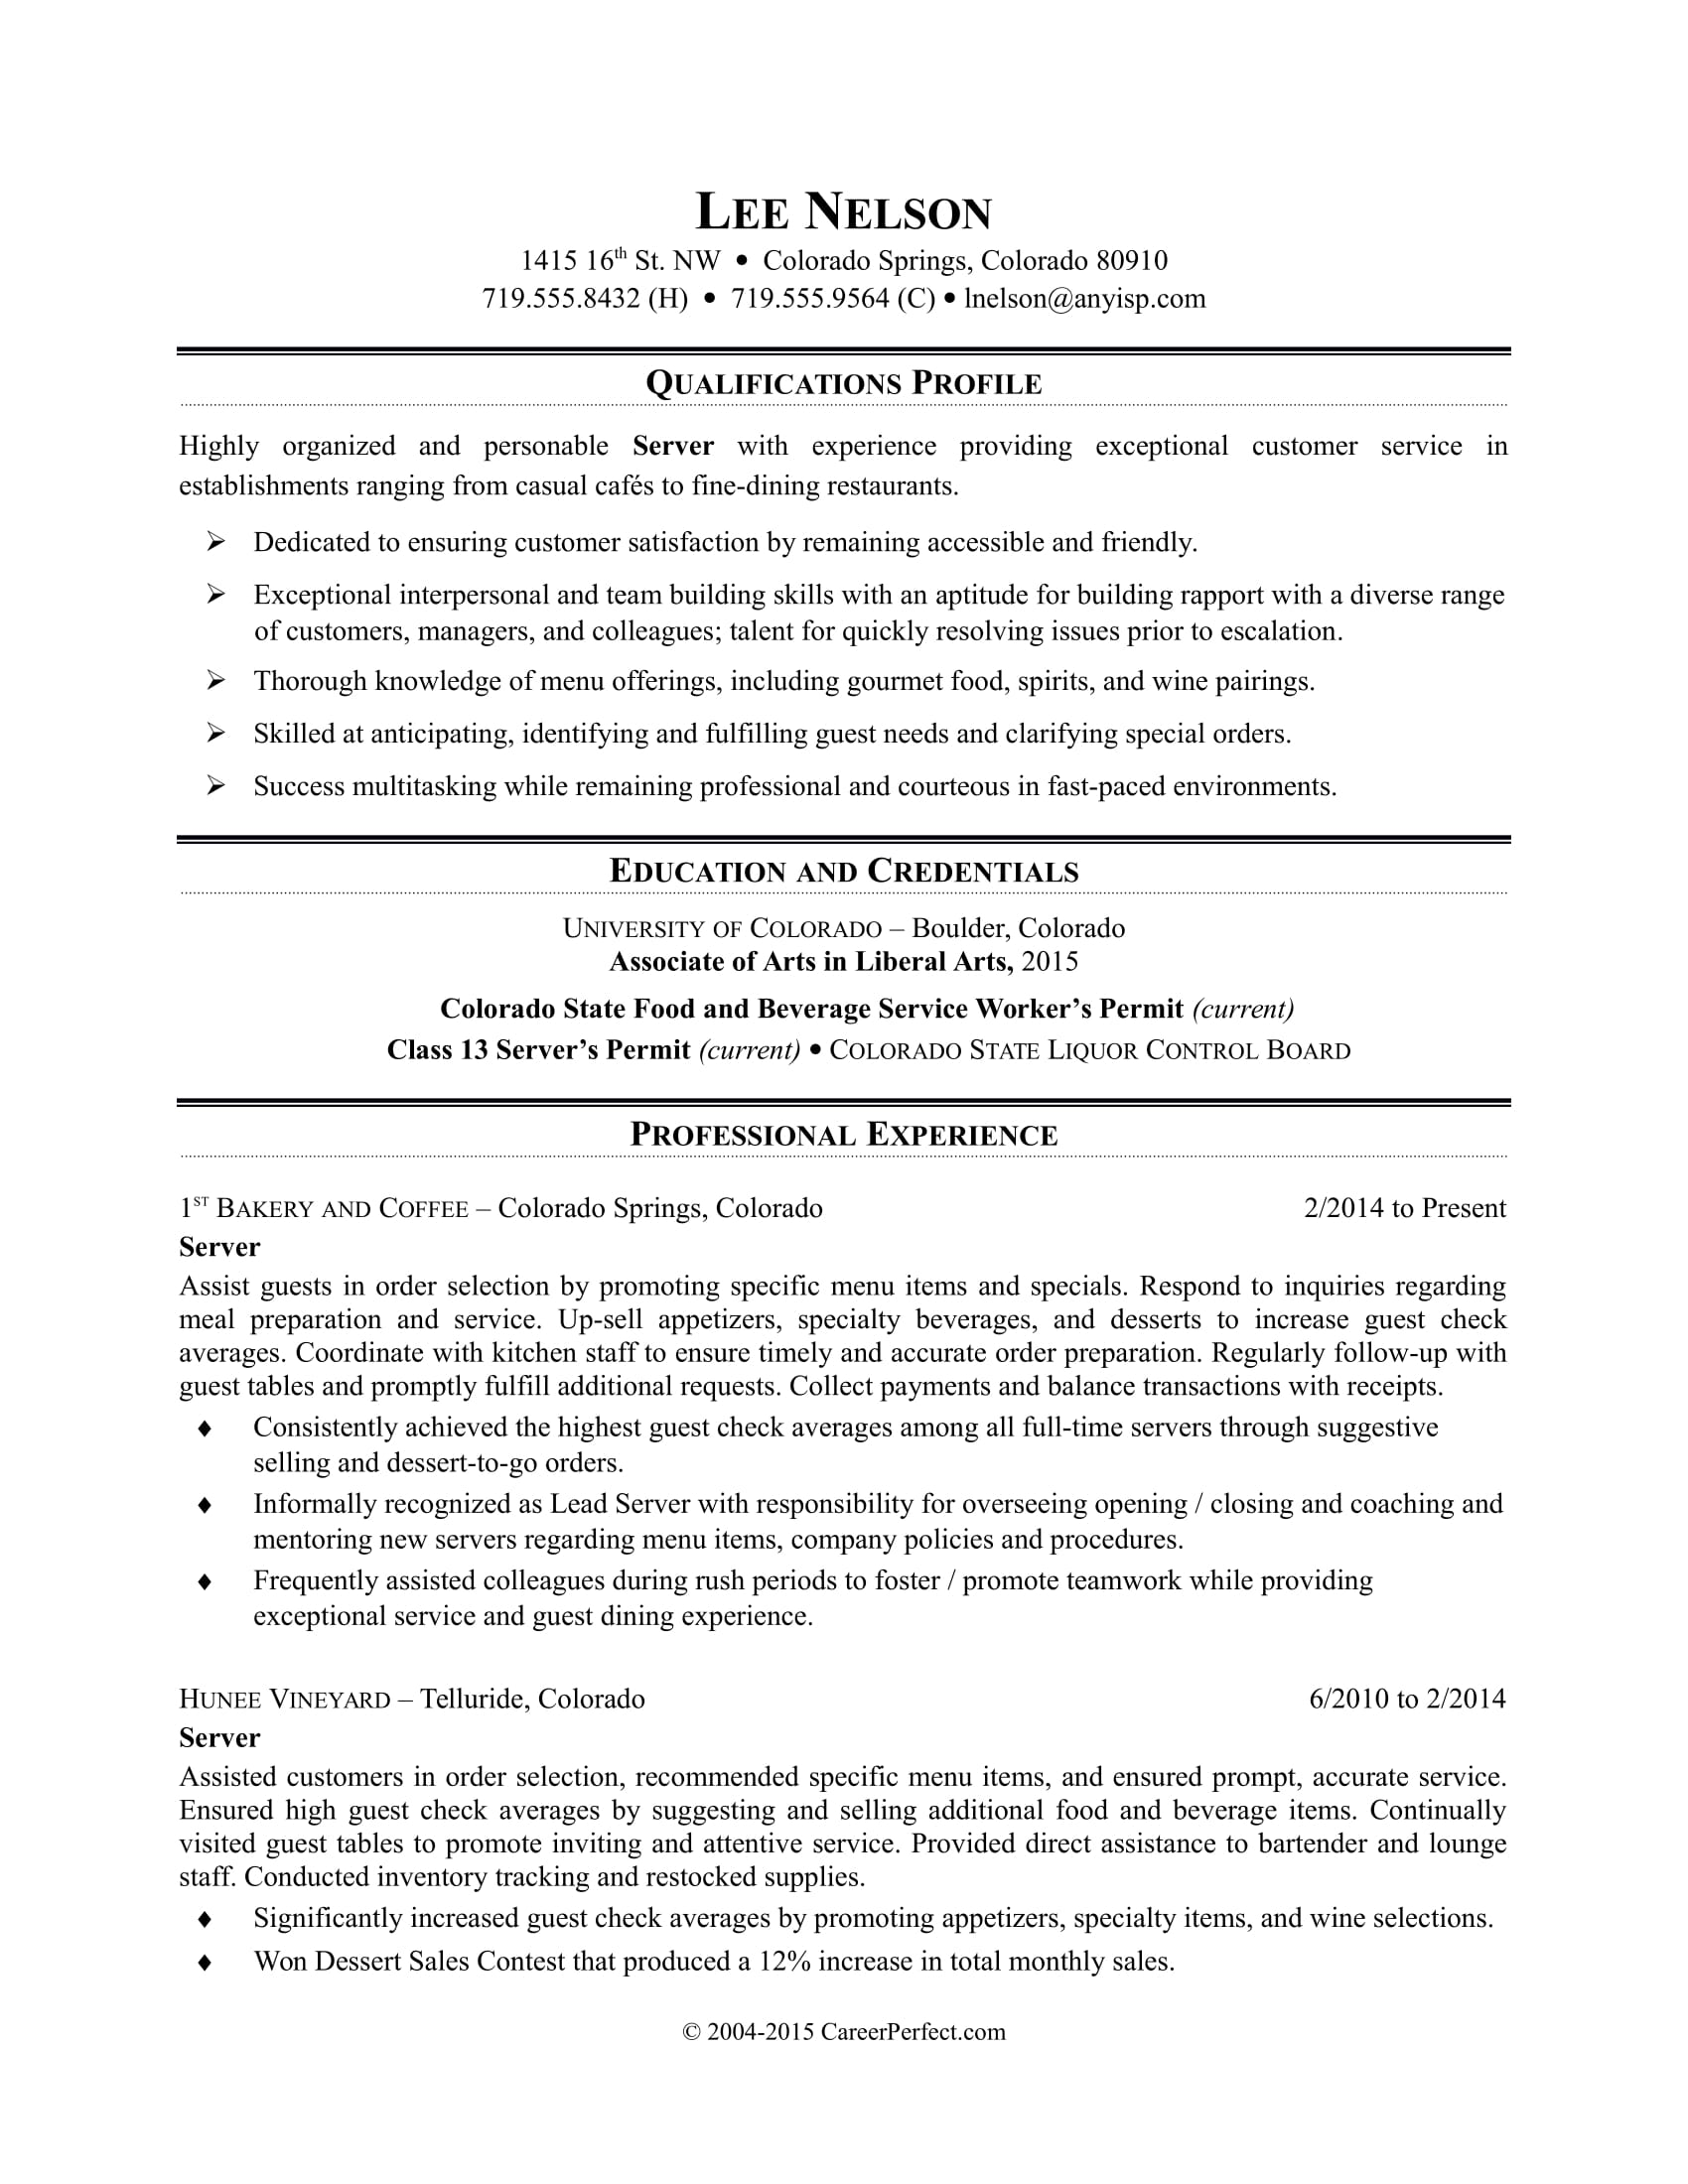 Amazing Sample Resume For A Restaurant Server And Restaurant Server Resume Examples